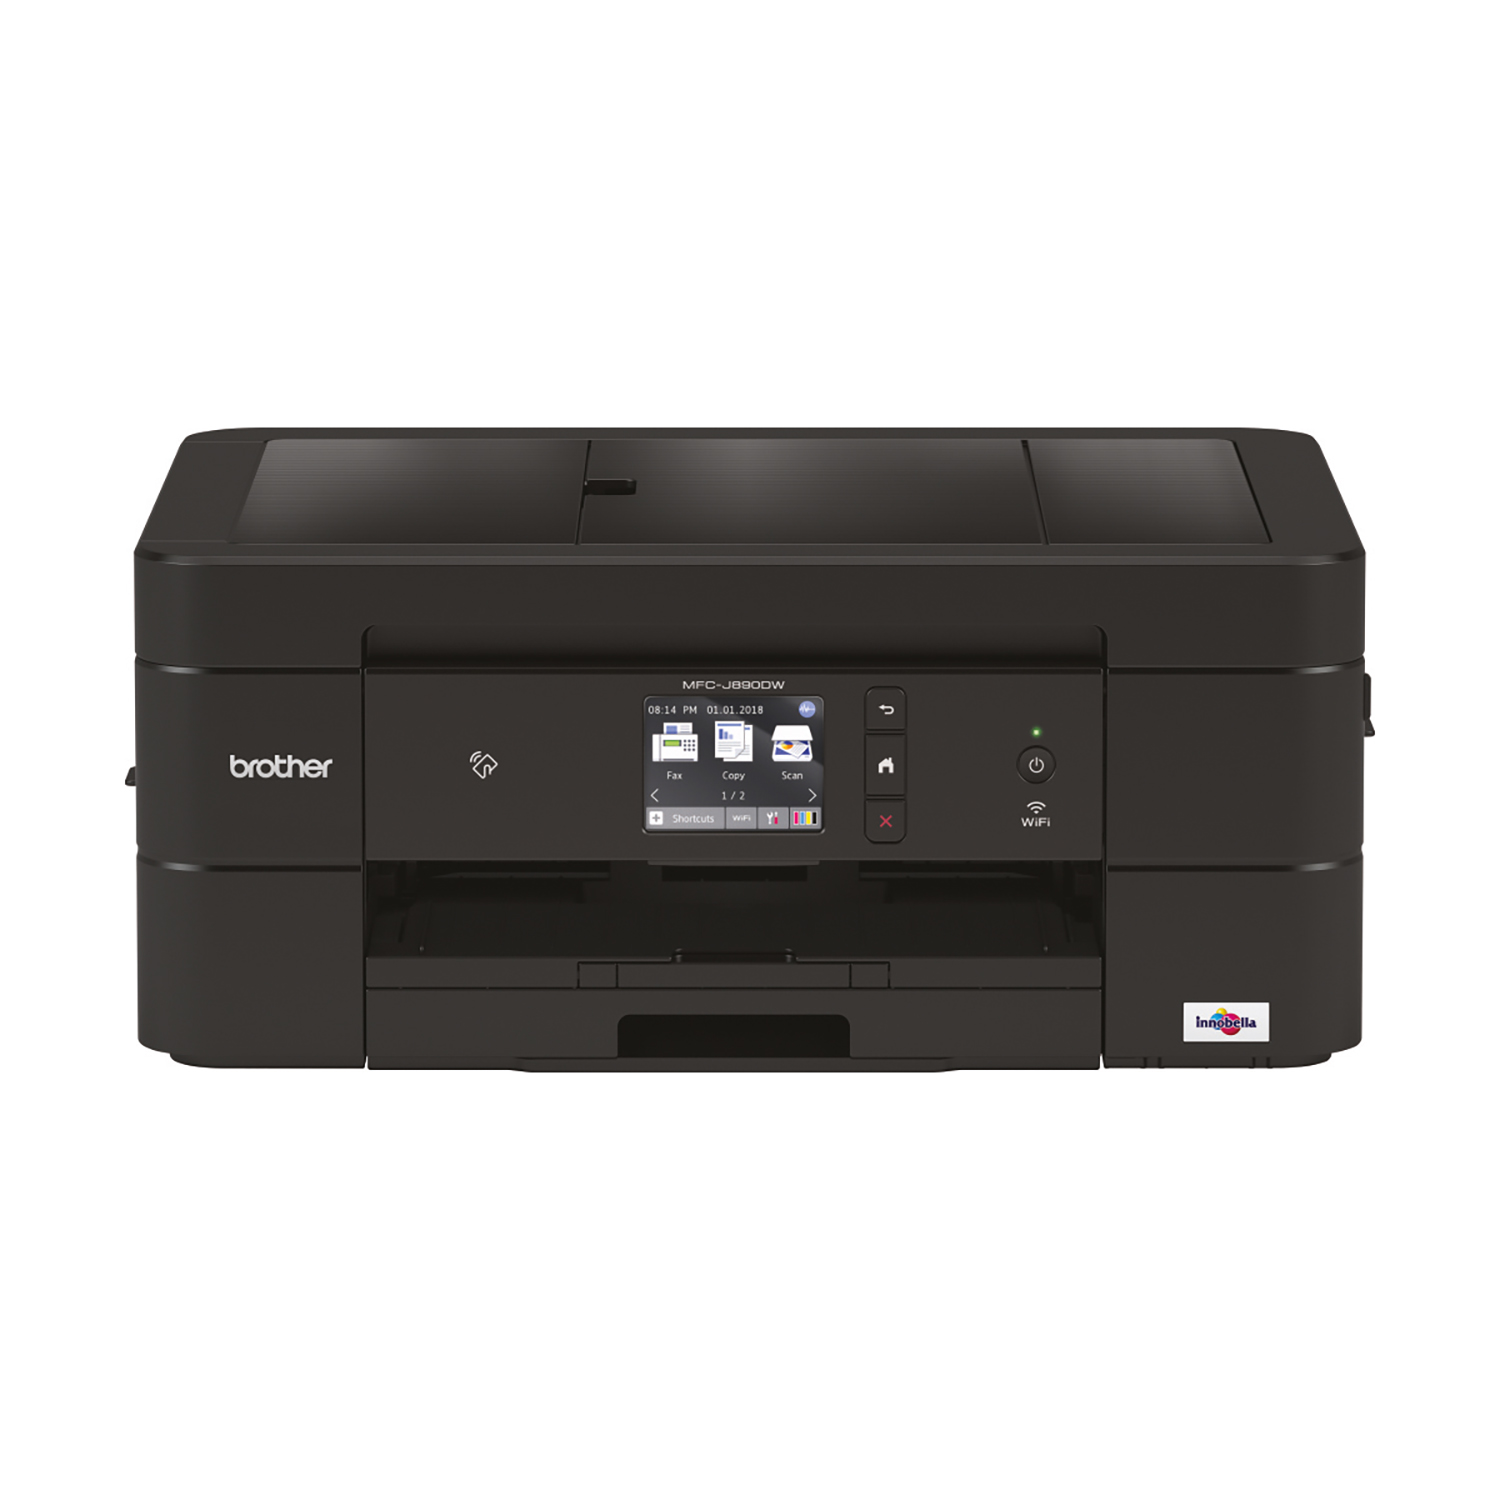 Multi function printers Brother MFCJ890DW Multifunction Inkjet Printer Ref MFCJ890DWZU1